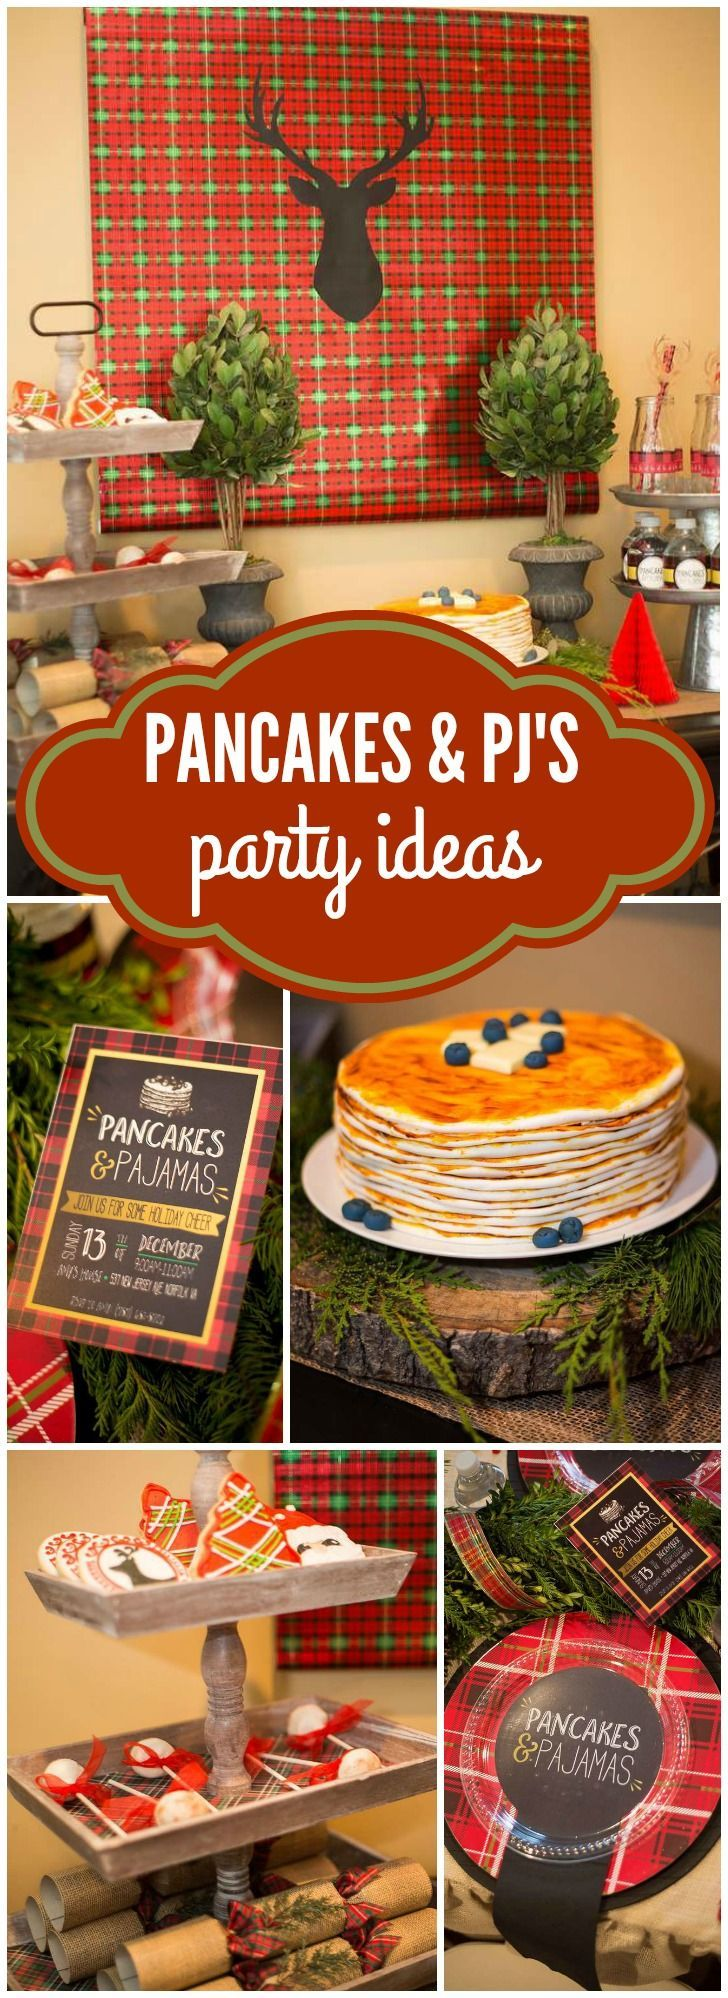 Check Out This Rustic Pancakes And Pajamas Party In Plaid Burlap See More Work Christmas IdeasHoliday